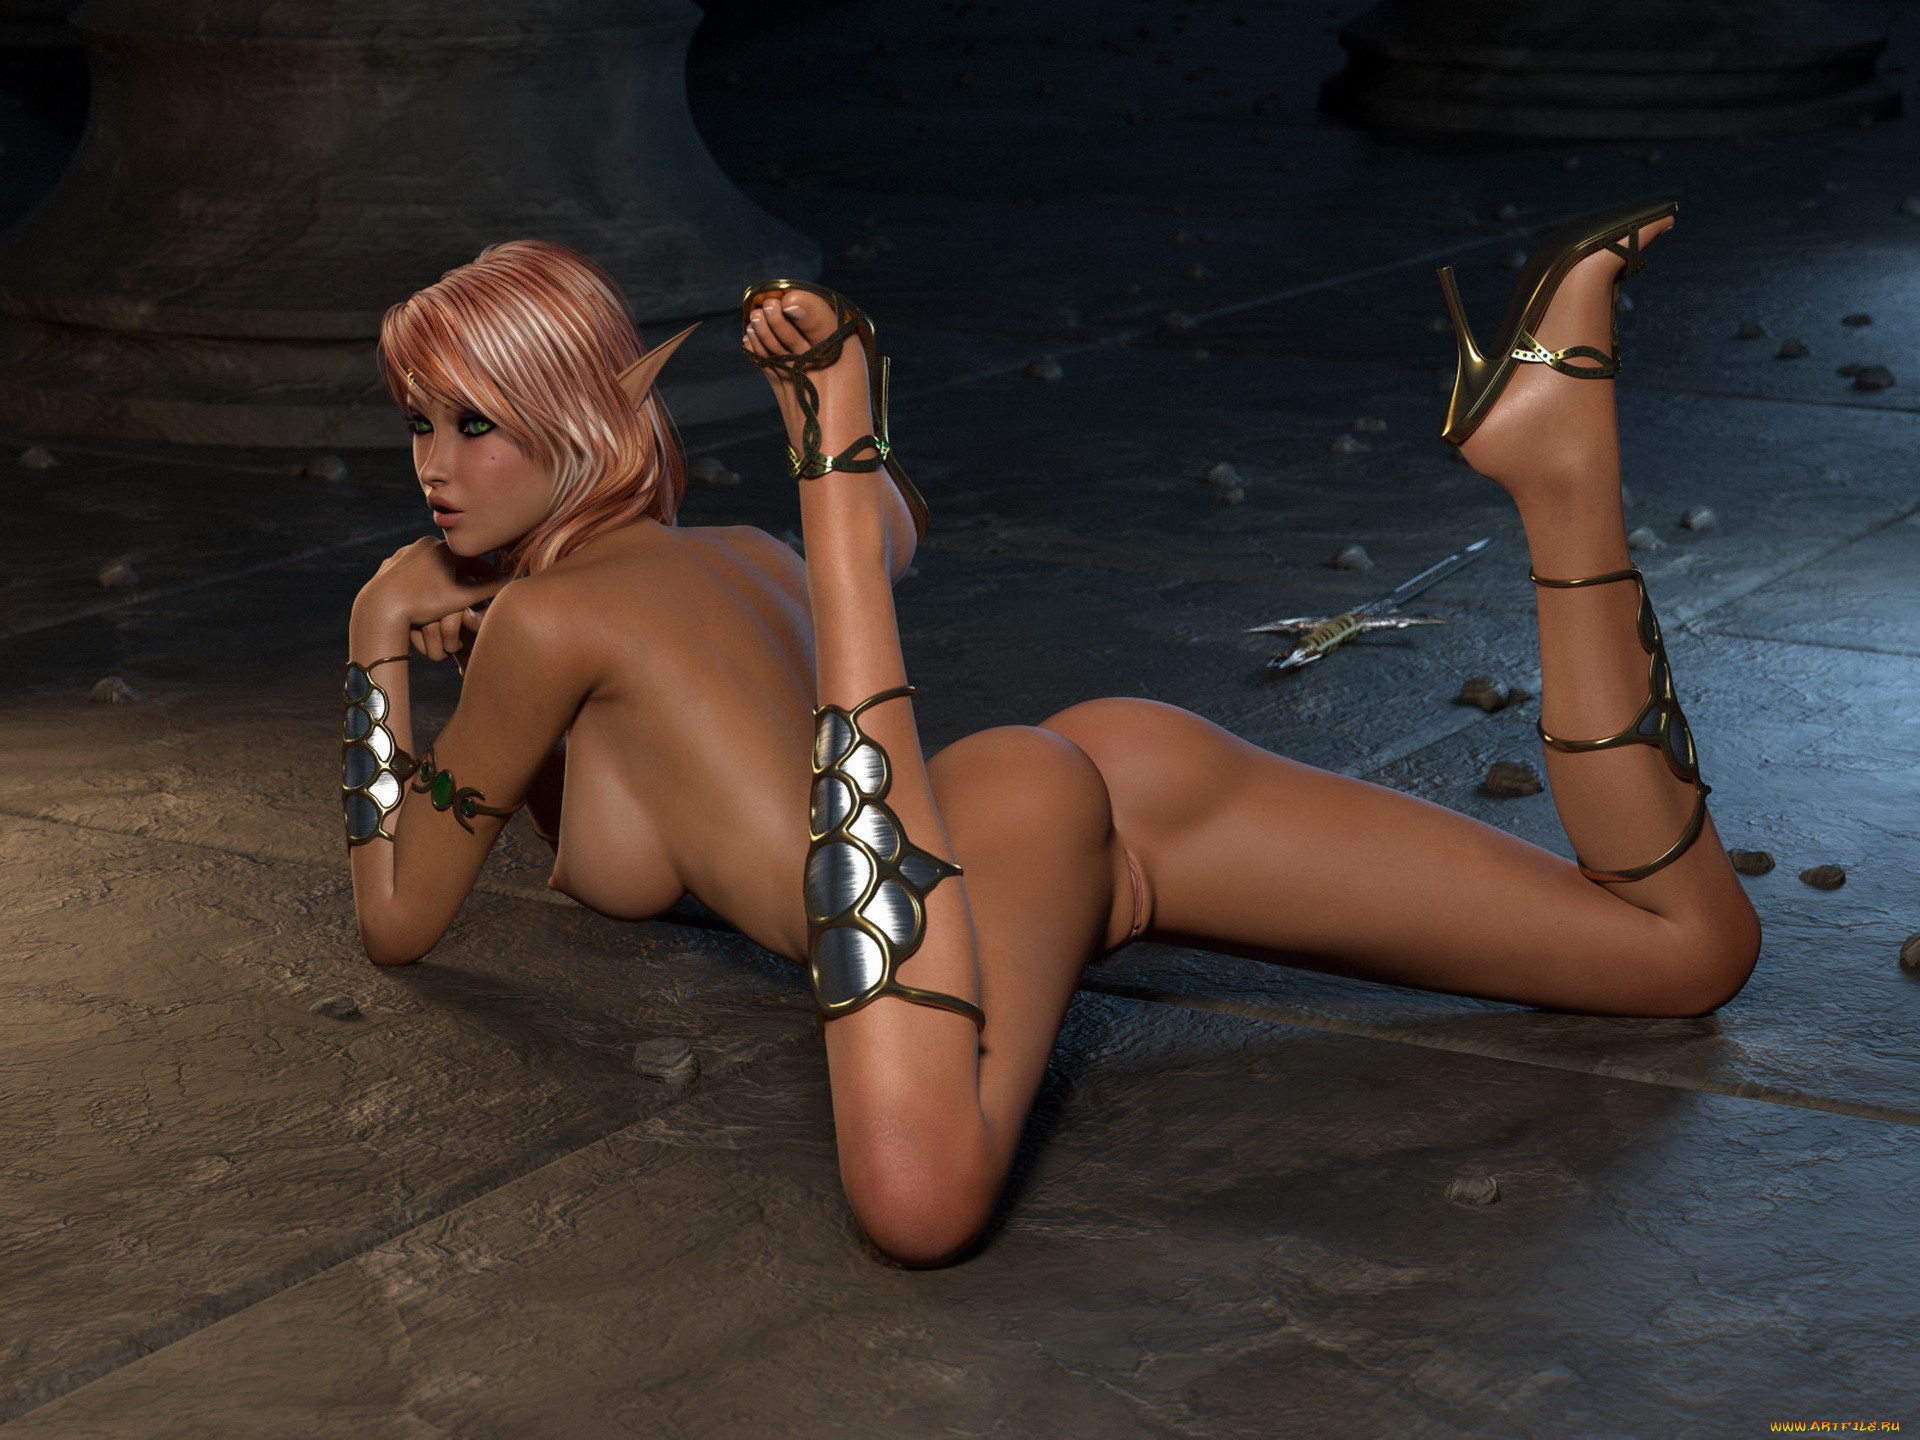 Nude 3d elf drawing nude scene